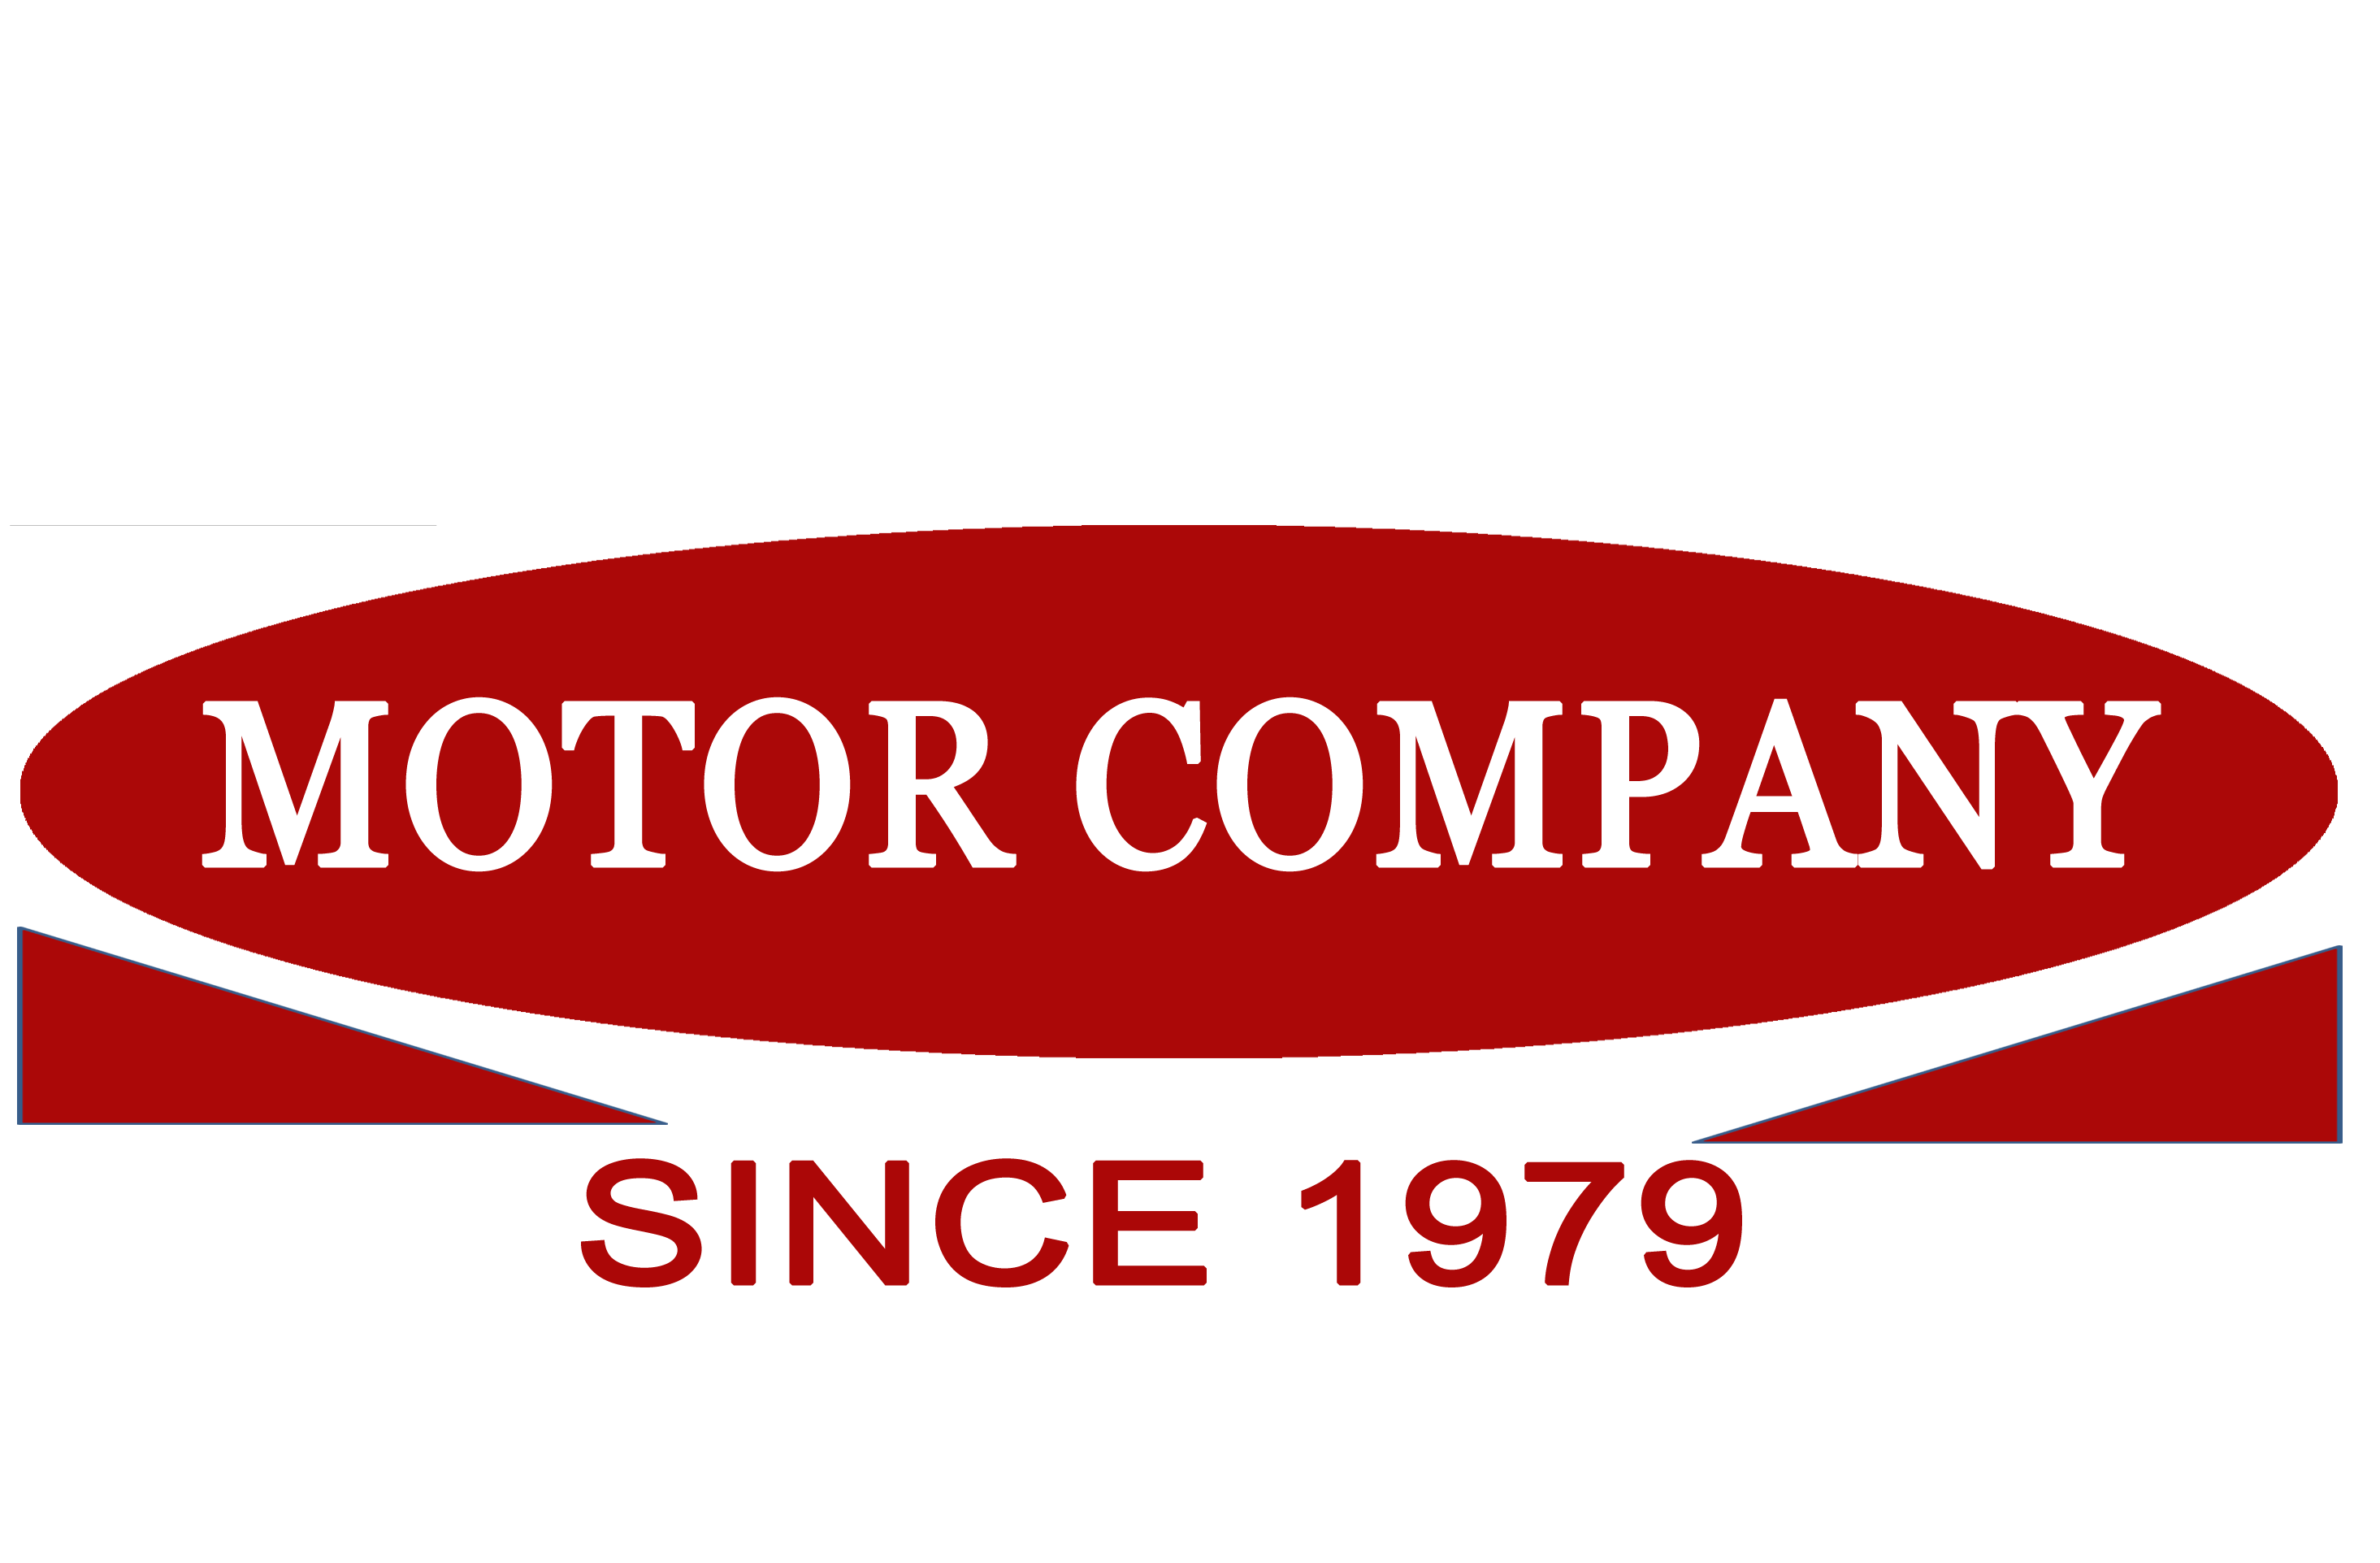 Carfax for Sale Lovely Carfax Ewing Motor Co Inc